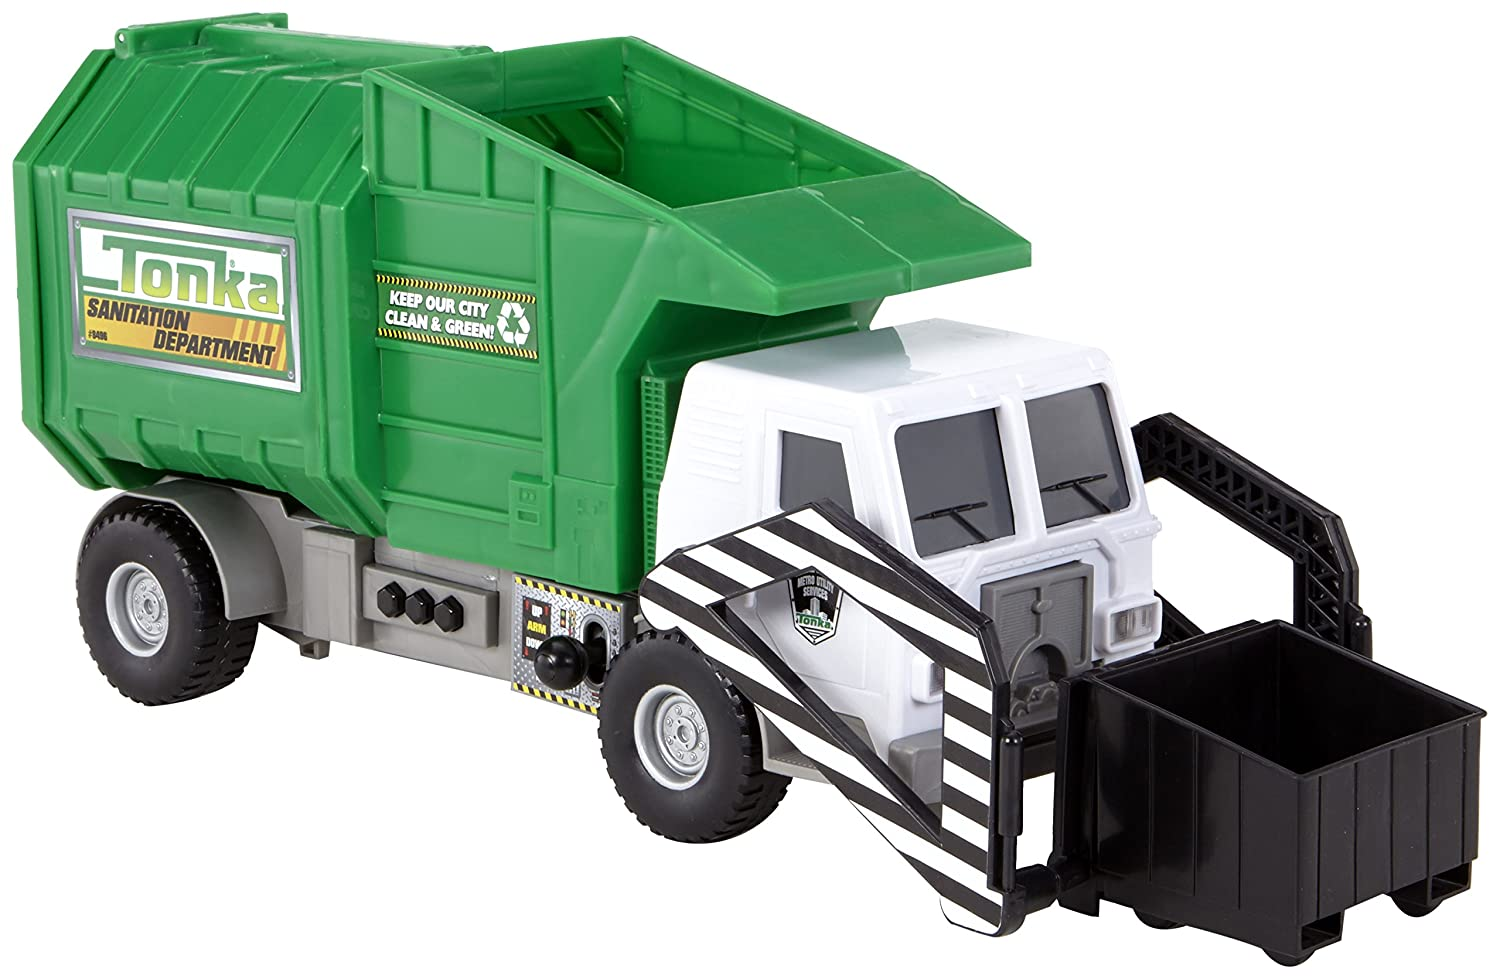 bruder trucks toys r us with Toy Garbage Truck Side Loader on Bru 2812 together with Watch likewise Watch furthermore John Deere Gator Xuv Ride On Tractor in addition Bruder Scania R Series Orange Toy Garbage Truck.